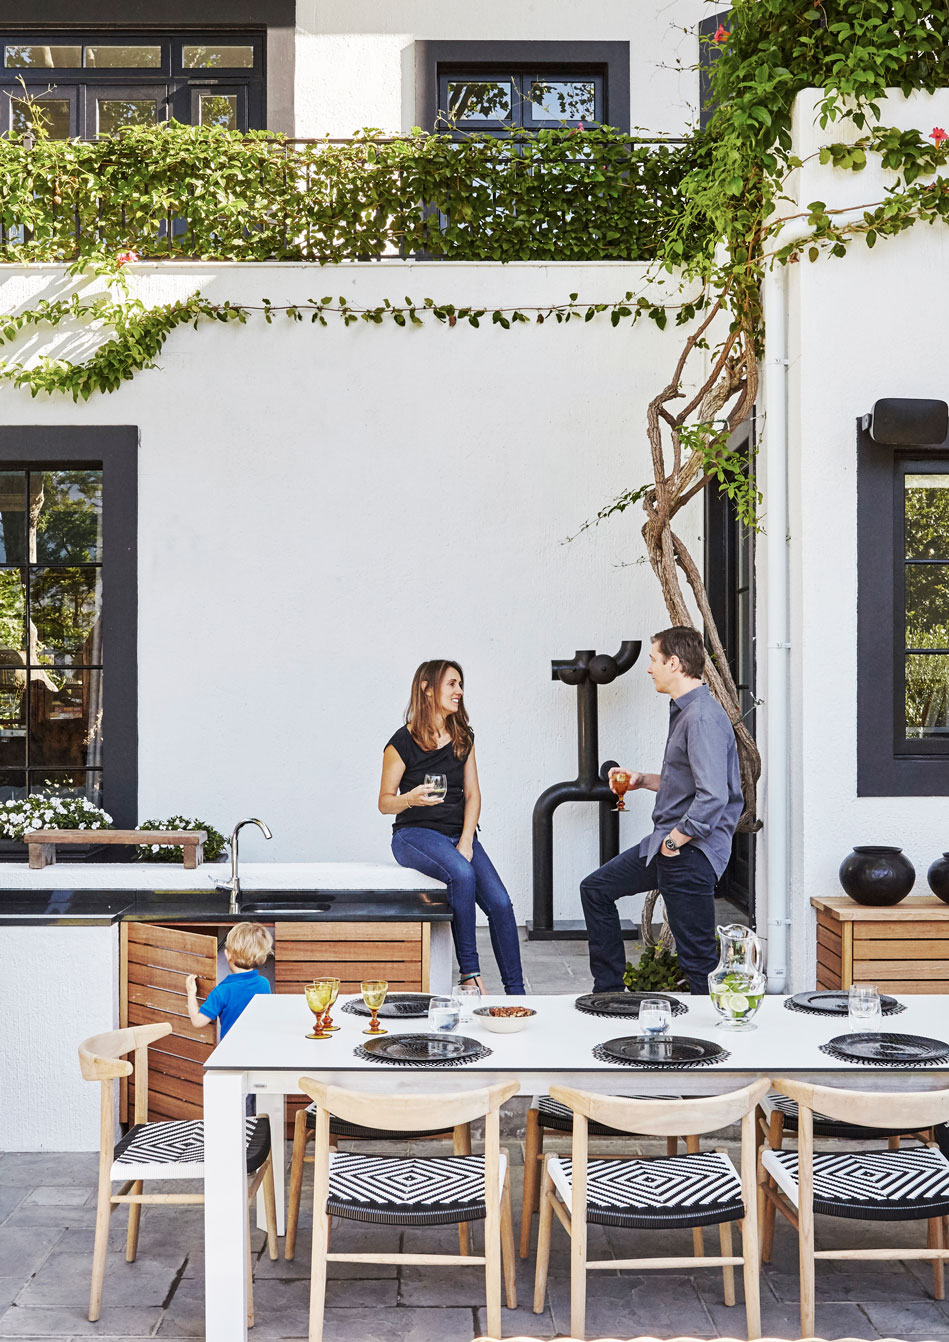 The outside area offers plenty of space for entertaining in Cape Town's Mediterranean climate. 'It was very easy for us to imagine our lives here.'